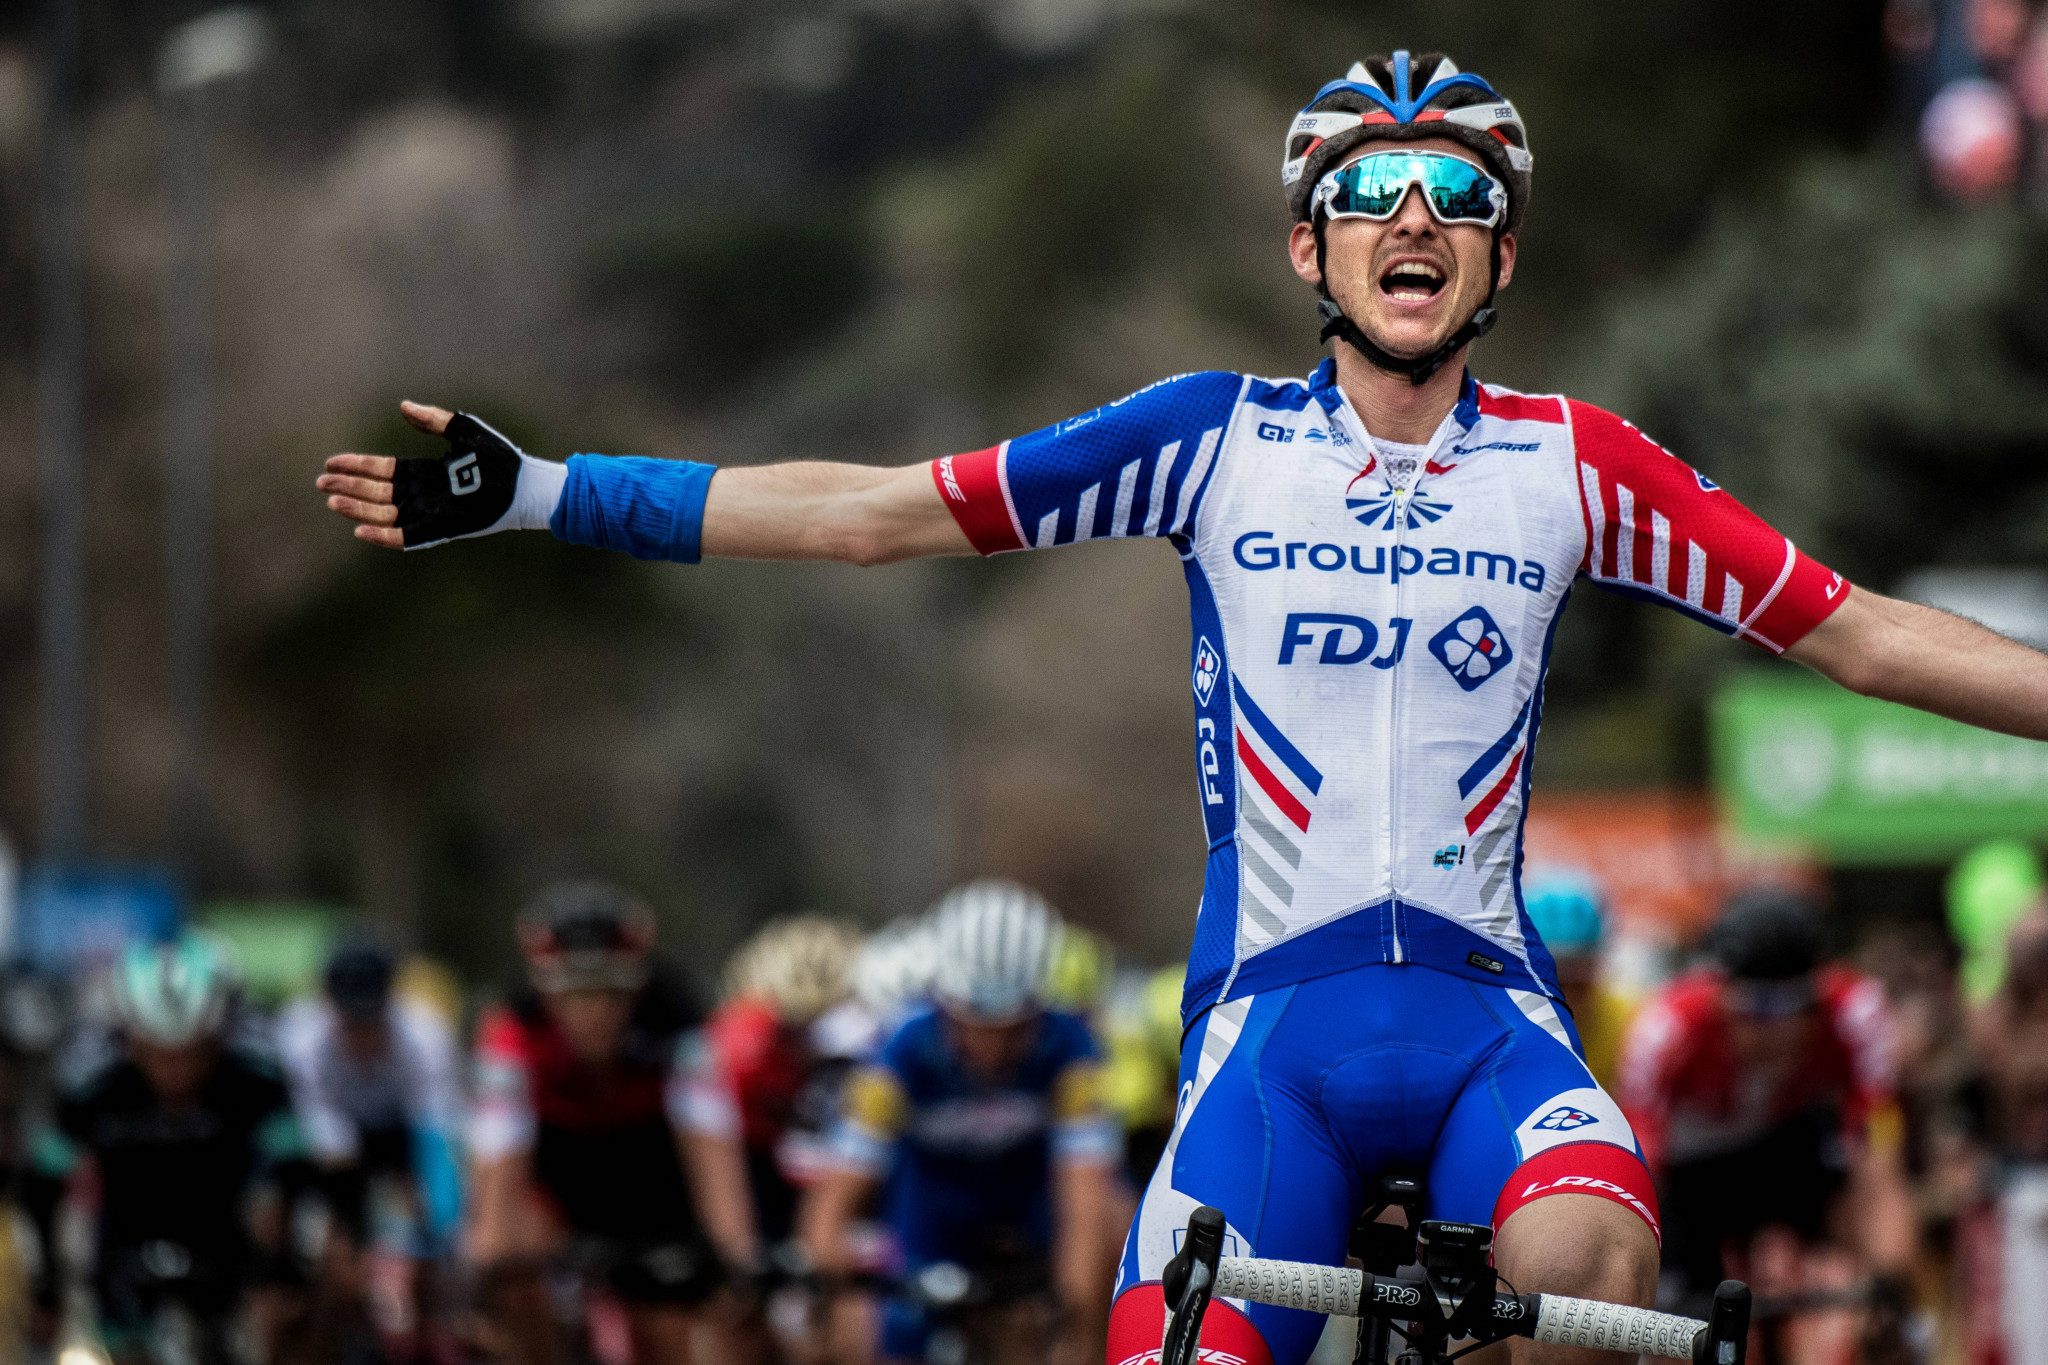 Molard wins stage six of Paris-Nice after late attack